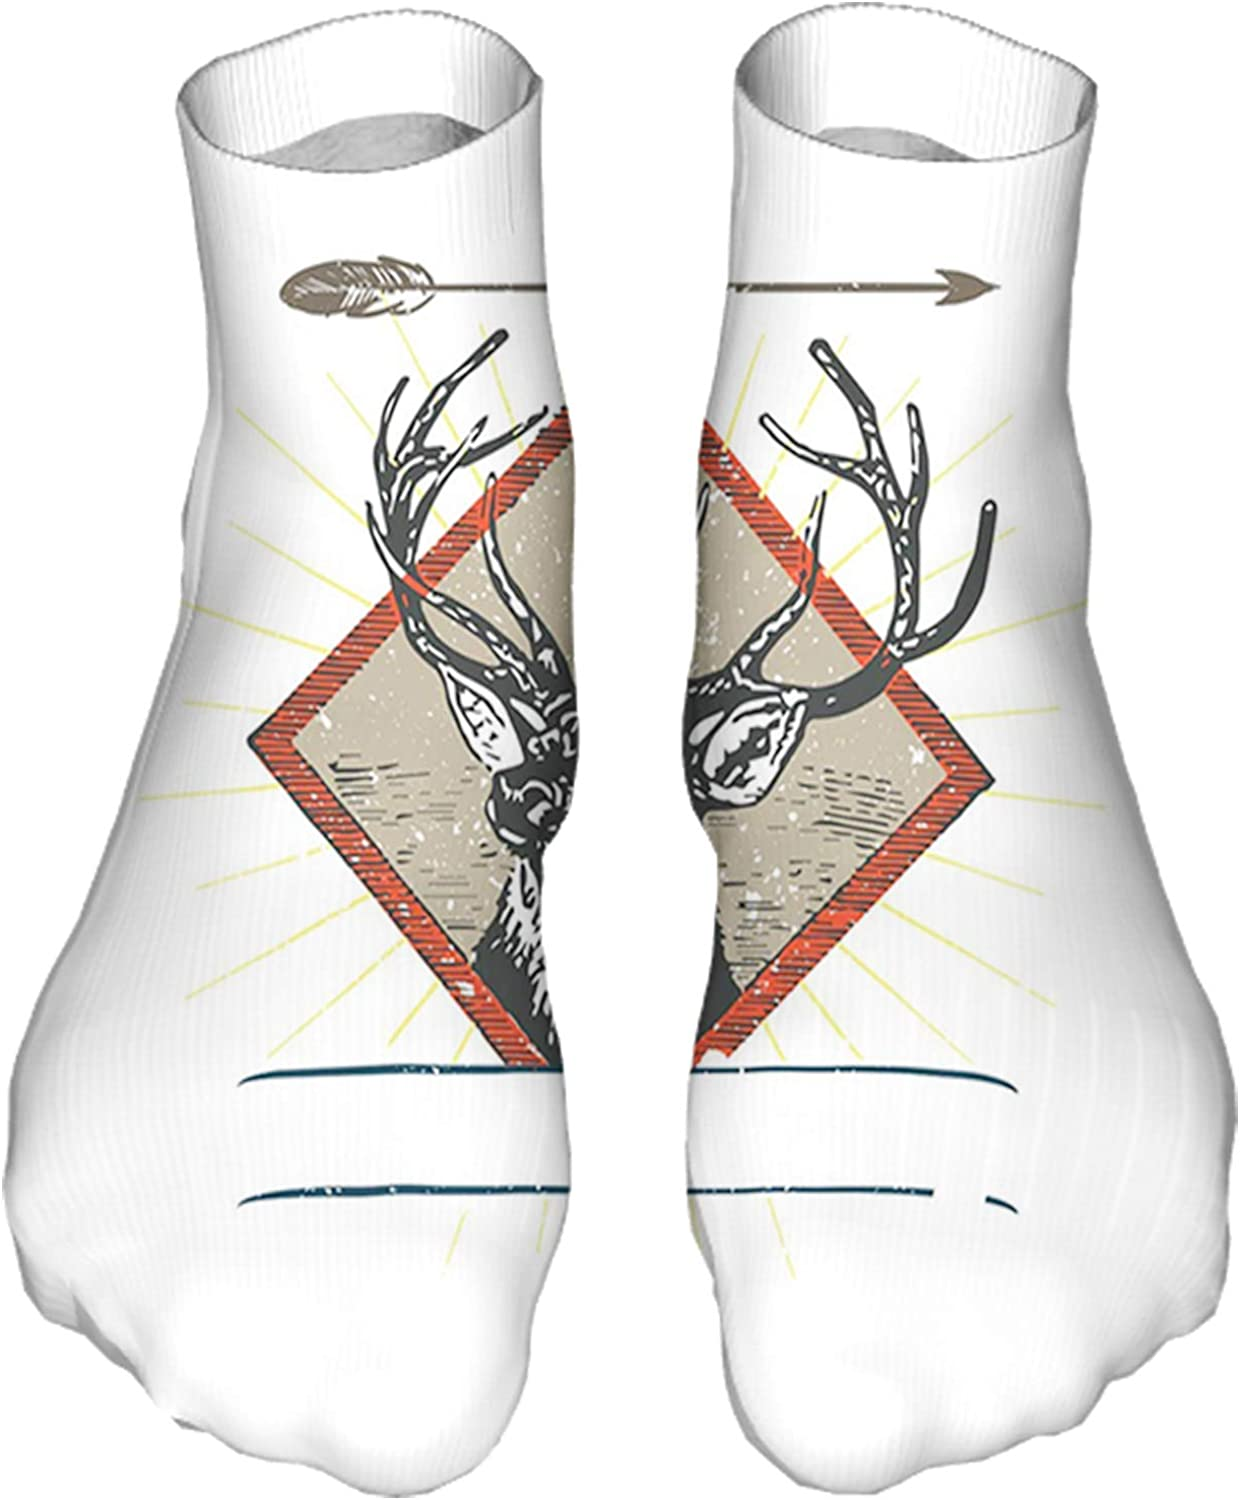 Women's Colorful Patterned Unisex Low Cut/No Show Socks,Hipster Wild Animal Antler Print on Plain Background